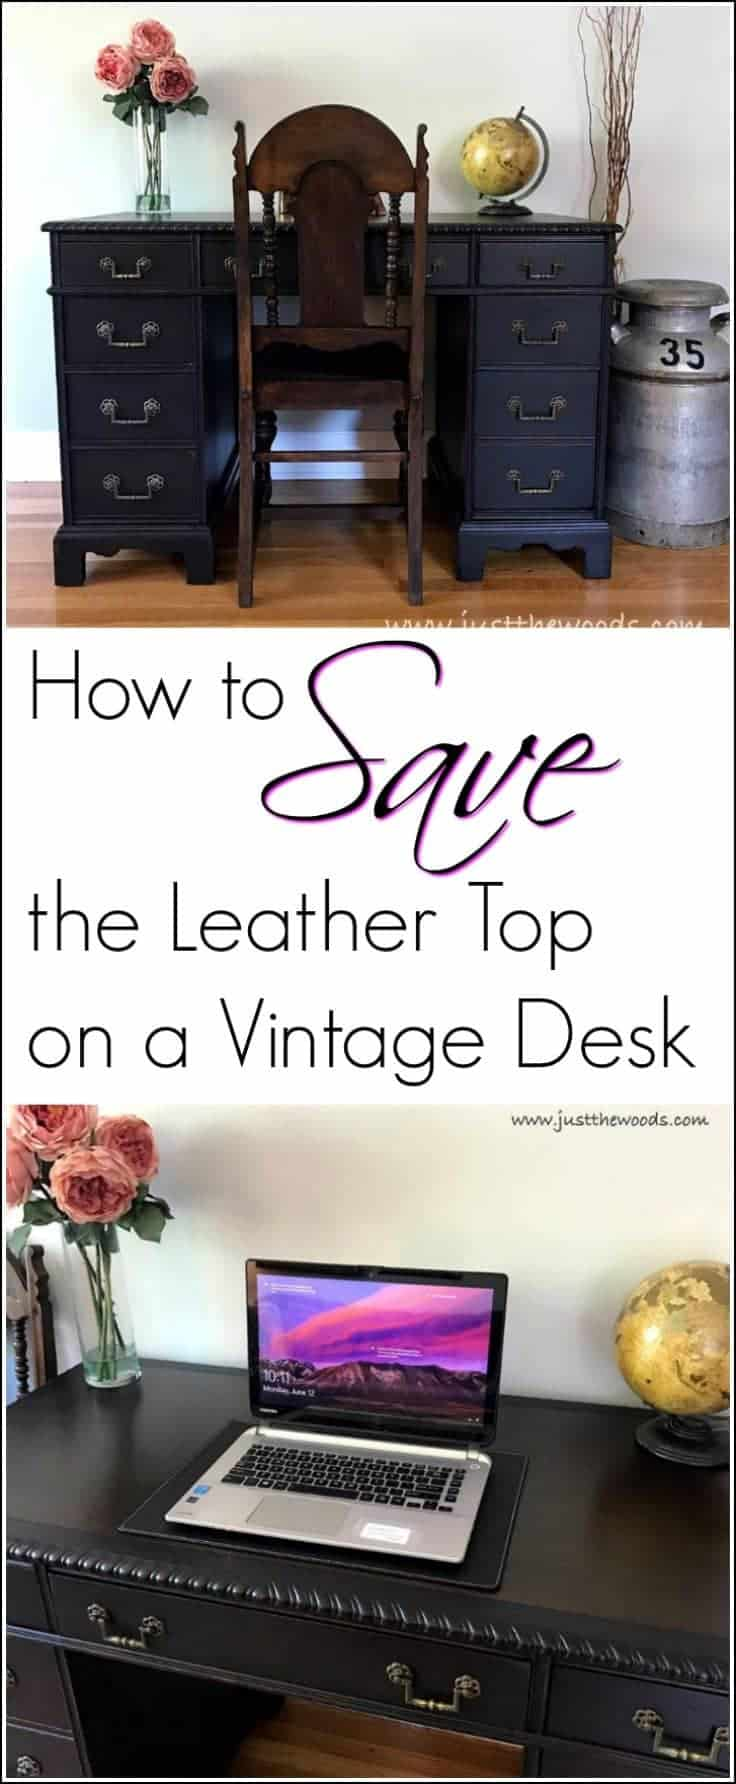 How to Save the Leather Top on a Vintage Desk / vintage desk with leather top / leather saved with wood stain